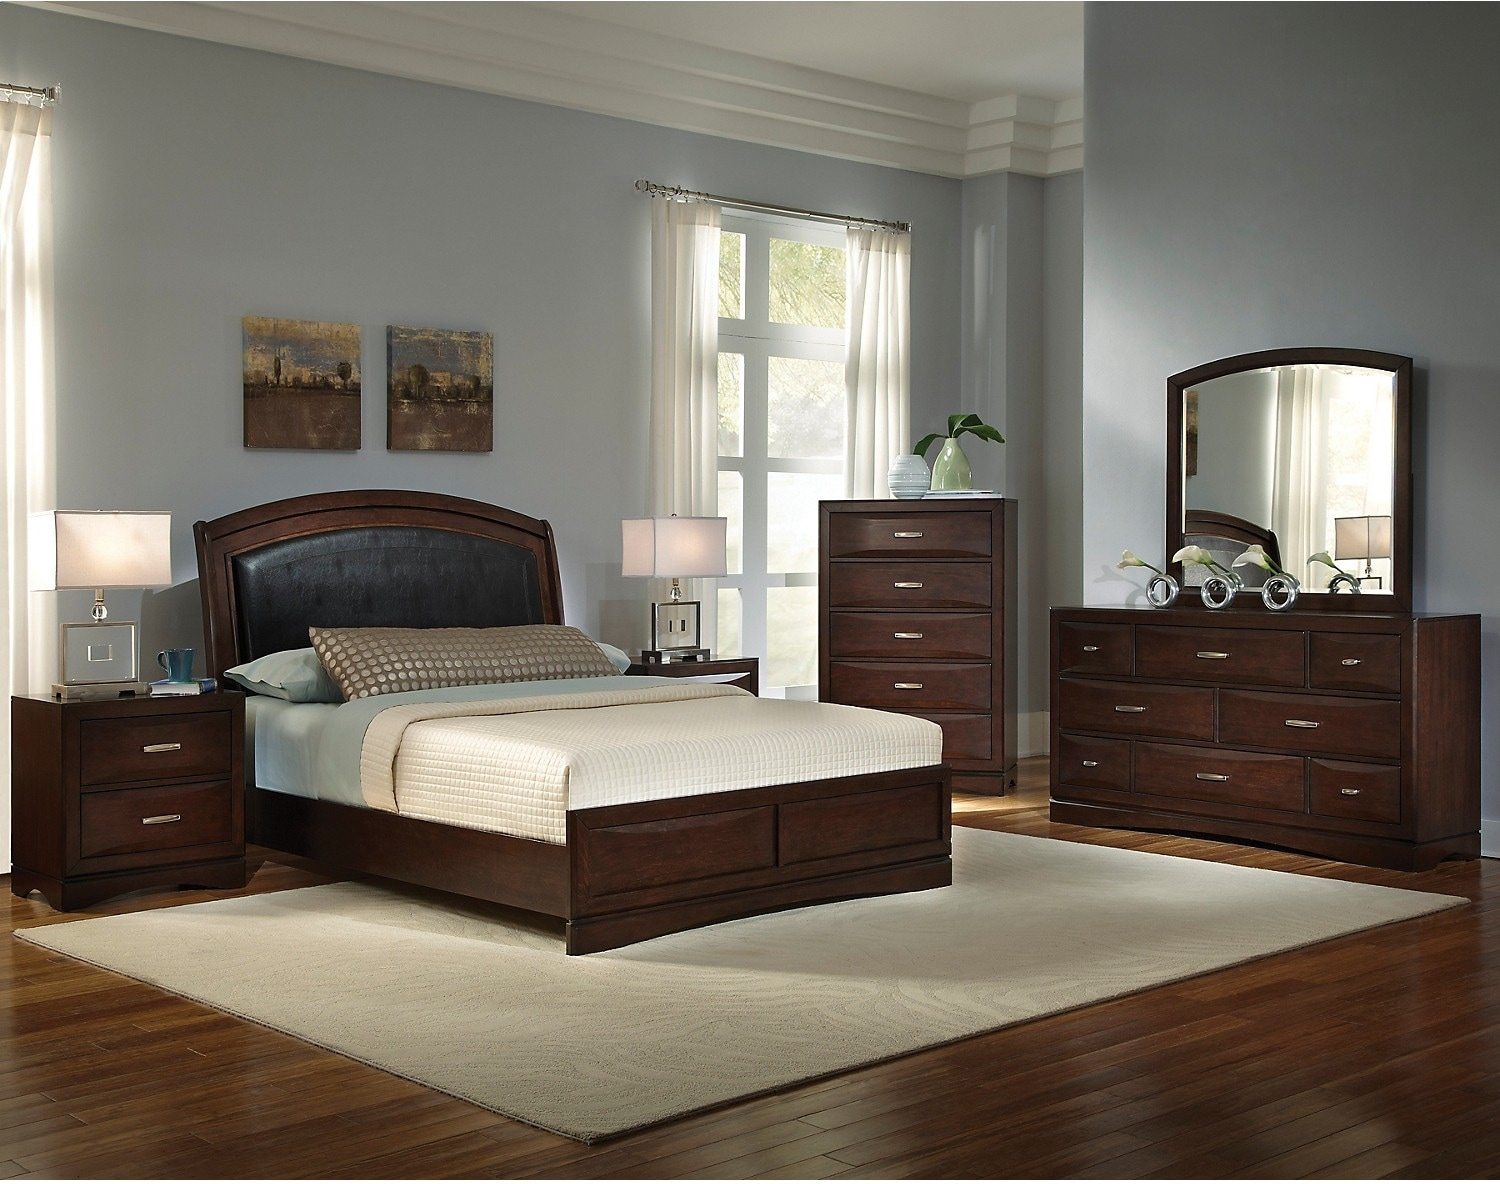 Bedroom Furniture - Beverly 8-Piece King Bedroom Set